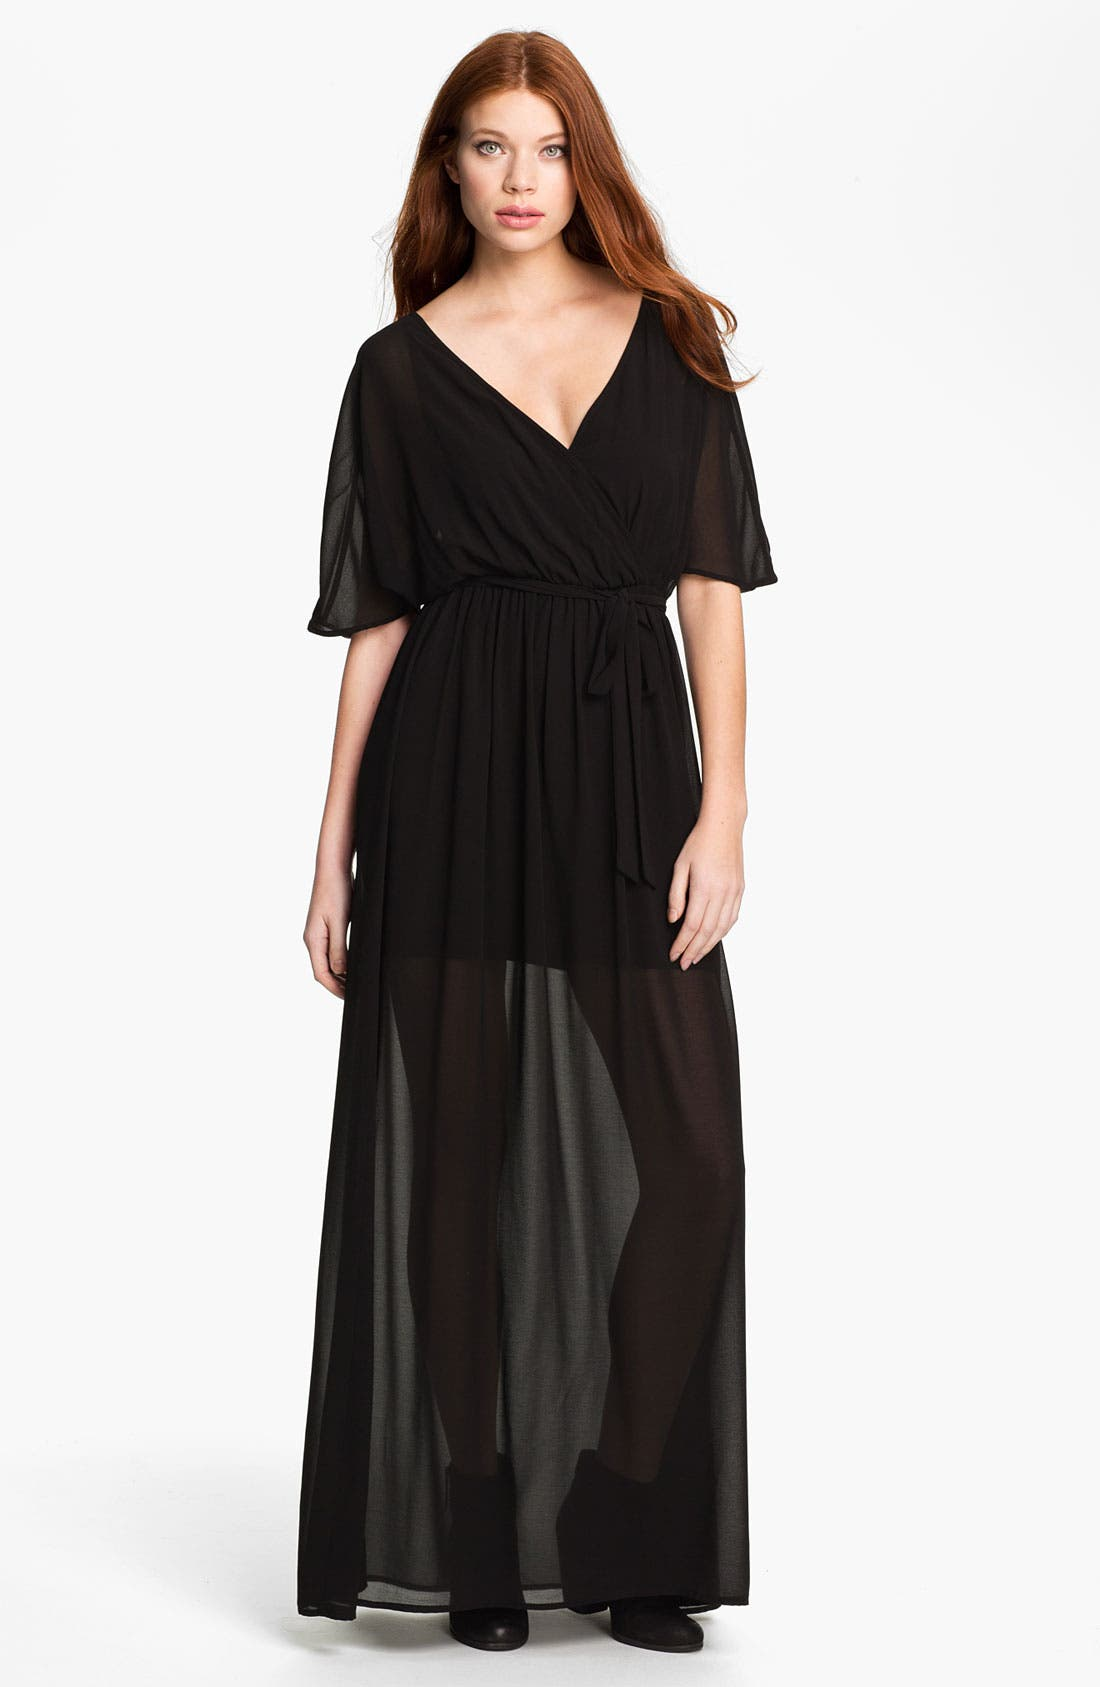 Alternate Image 1 Selected - Felicity & Coco Sheer Overlay Faux Wrap Maxi Dress (Nordstrom Exclusive)